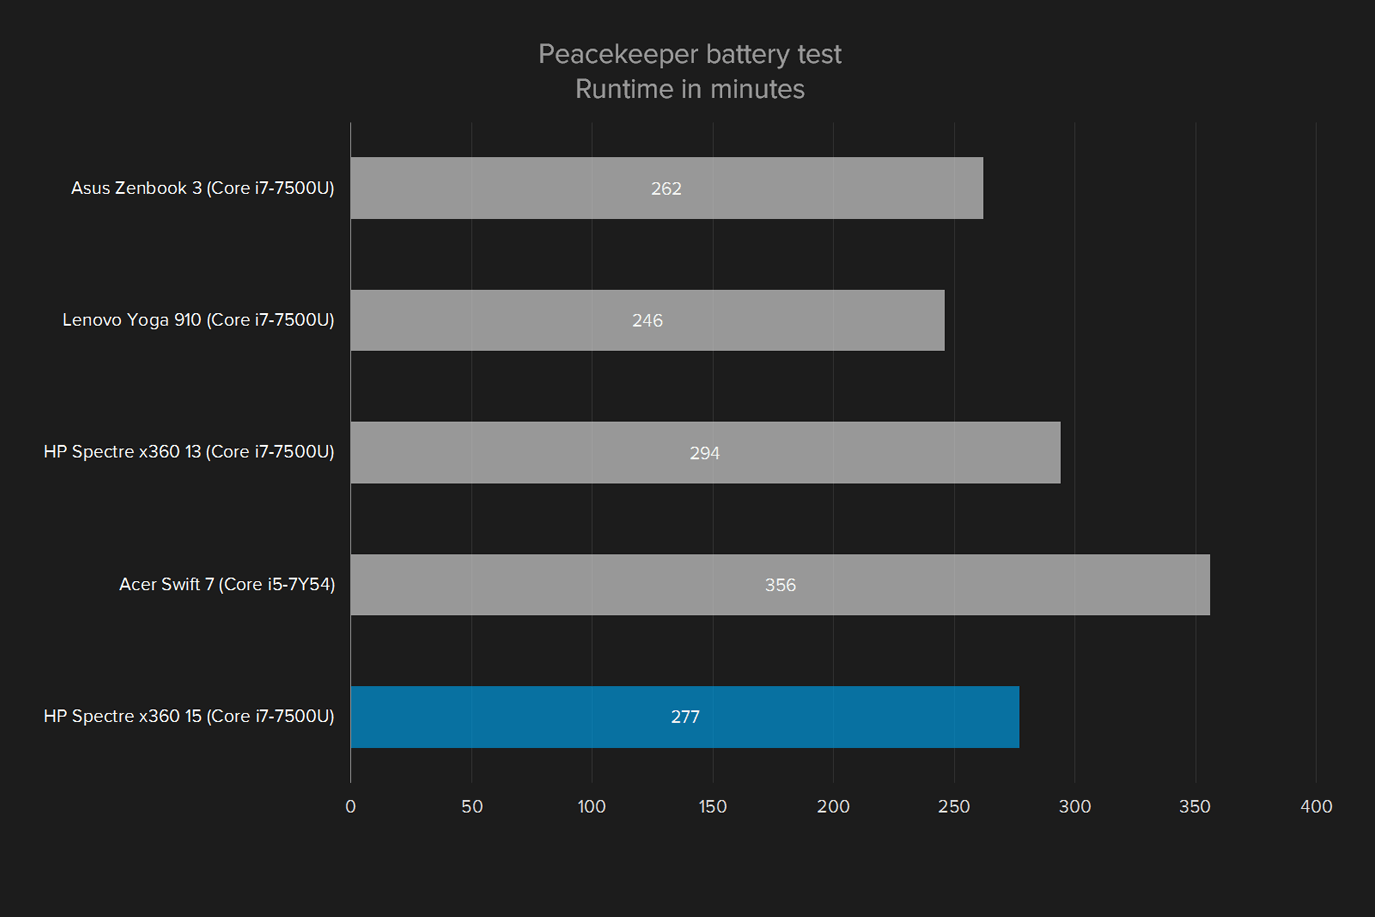 hp spectre x360 15 review peacekeeper battery text